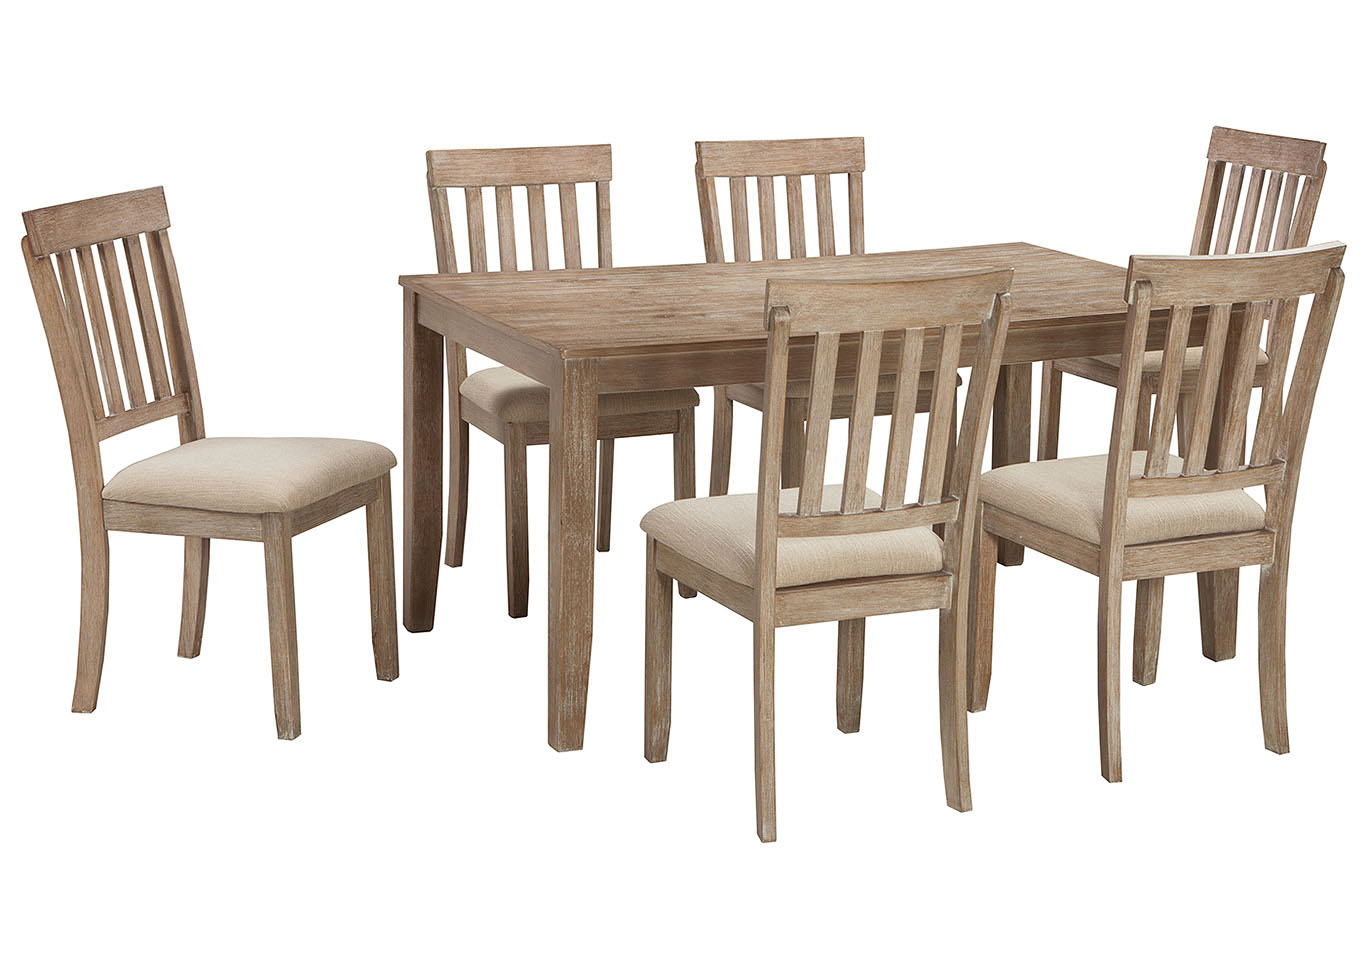 Blystone Two-tone Dining Room Table Set,Signature Design By Ashley